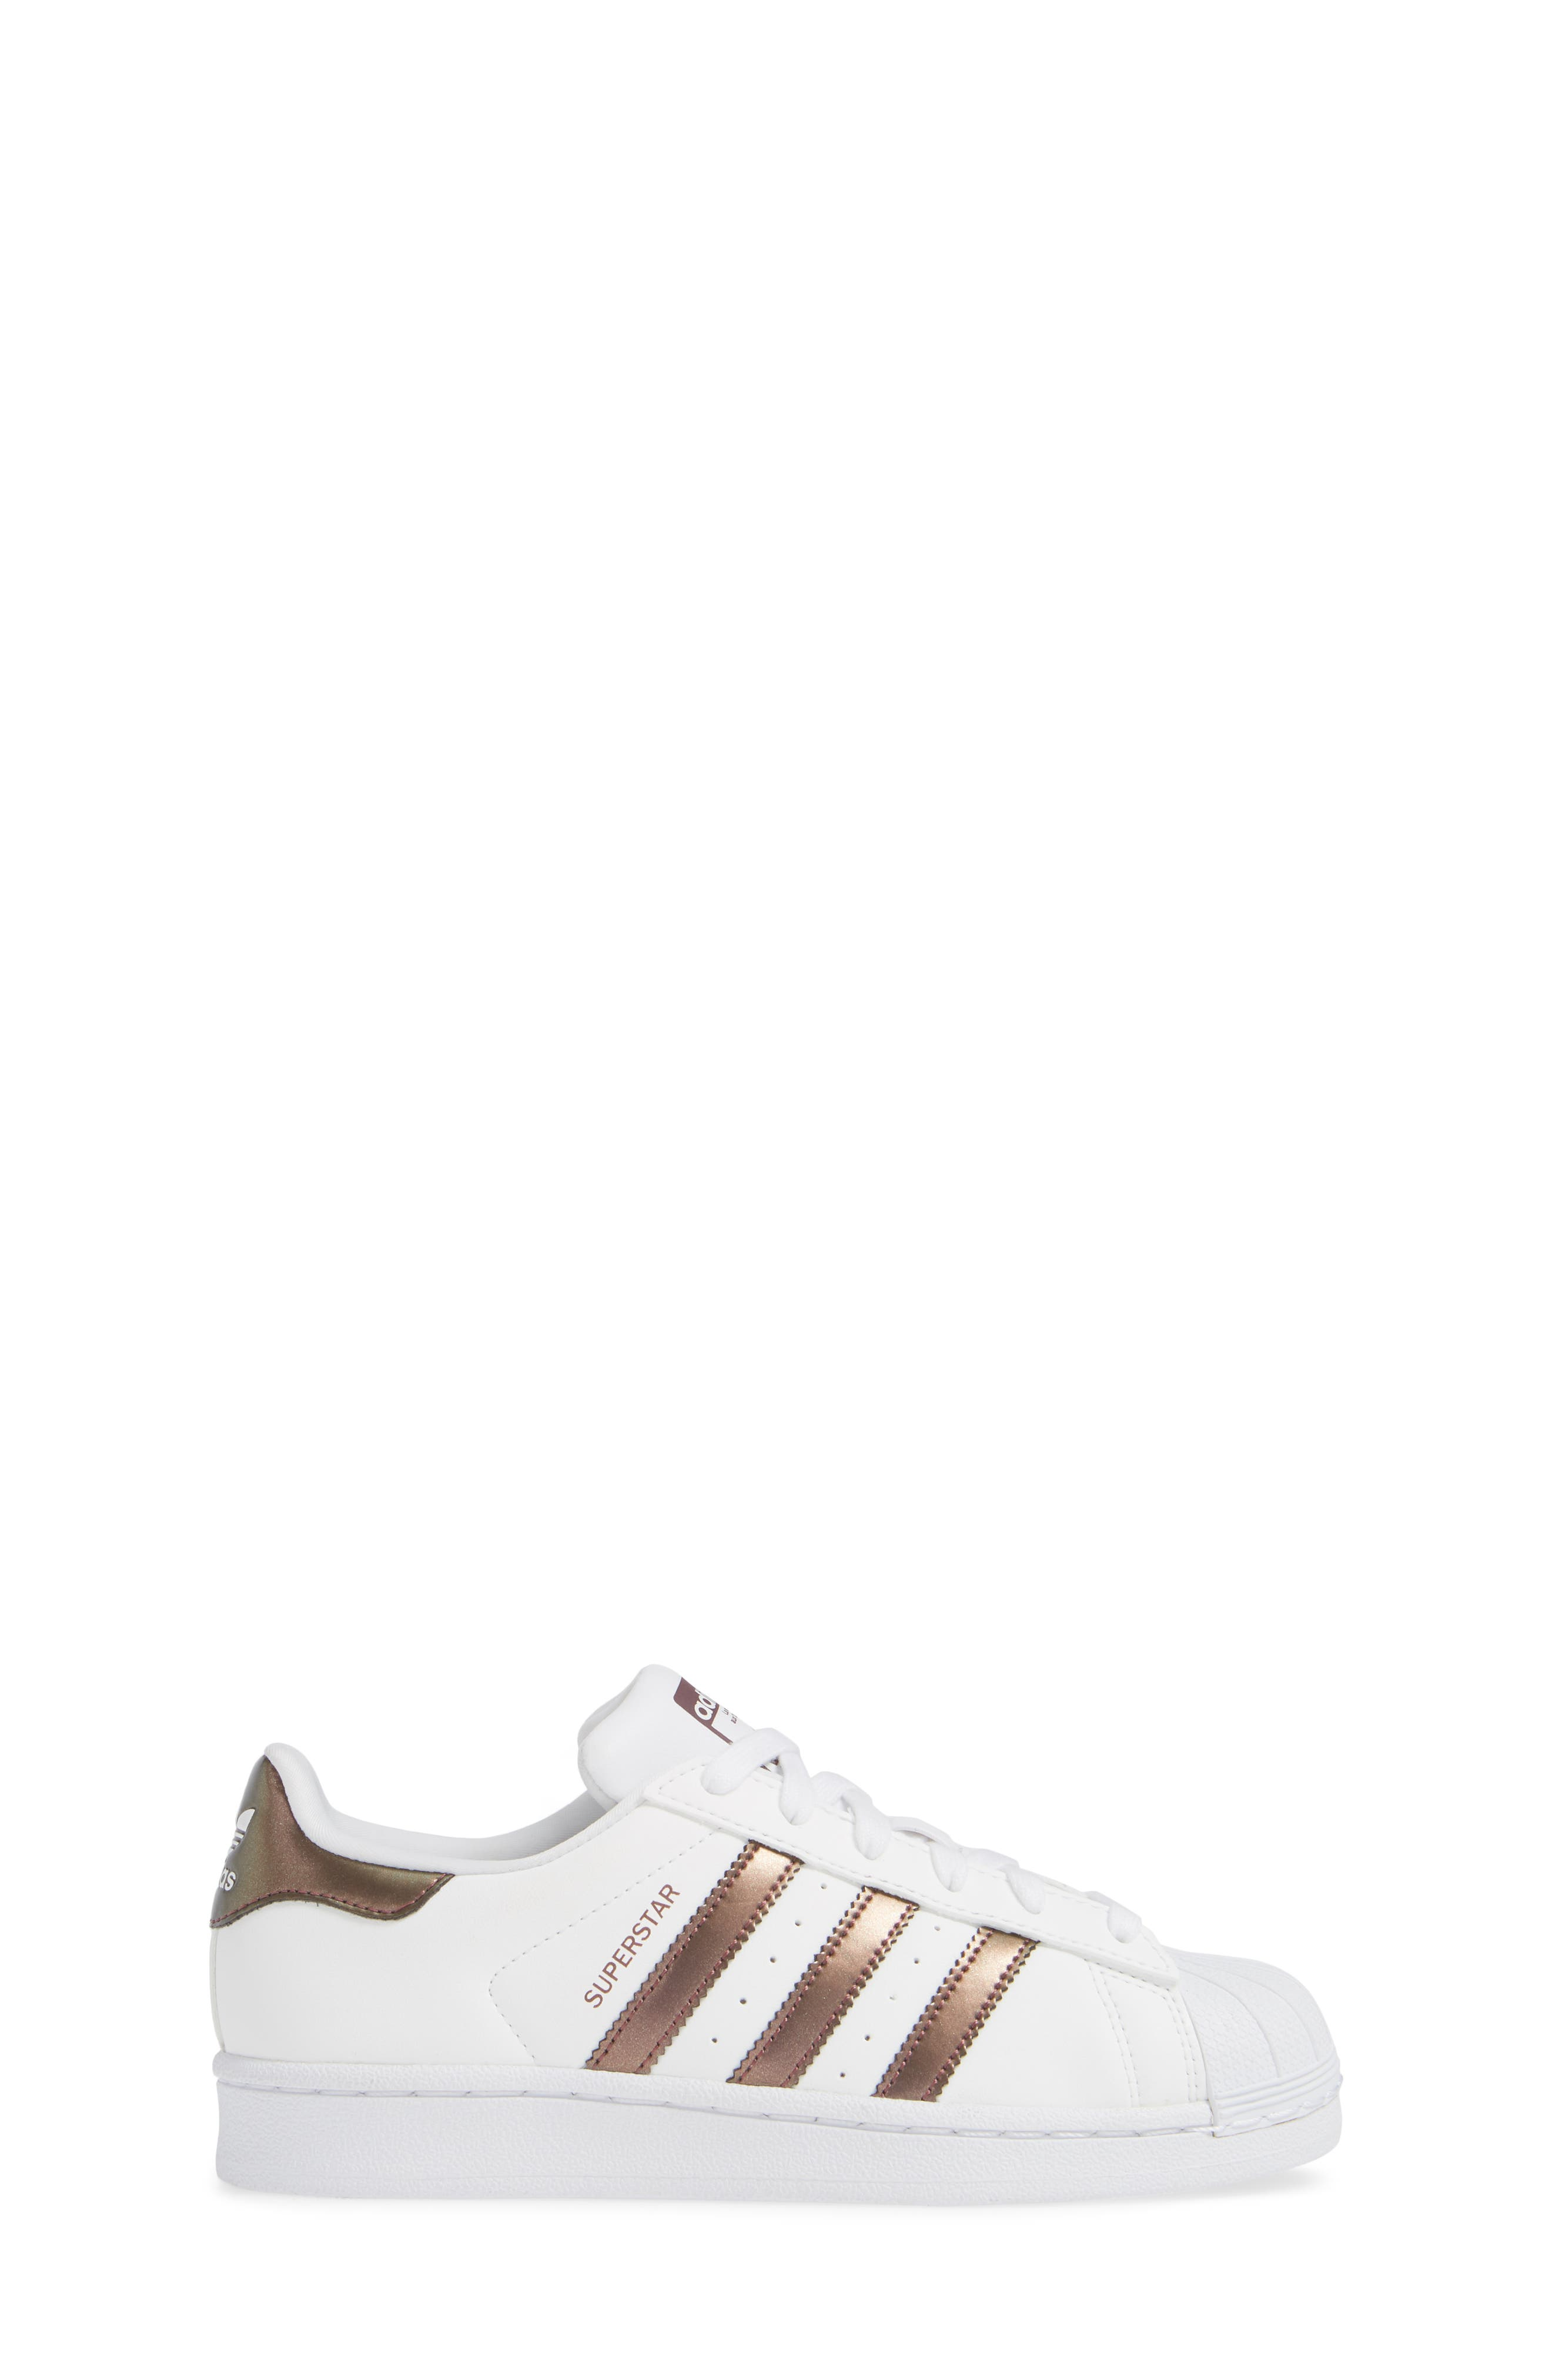 'Superstar II' Sneaker,                             Alternate thumbnail 3, color,                             FOOTWEAR WHITE/COPPER